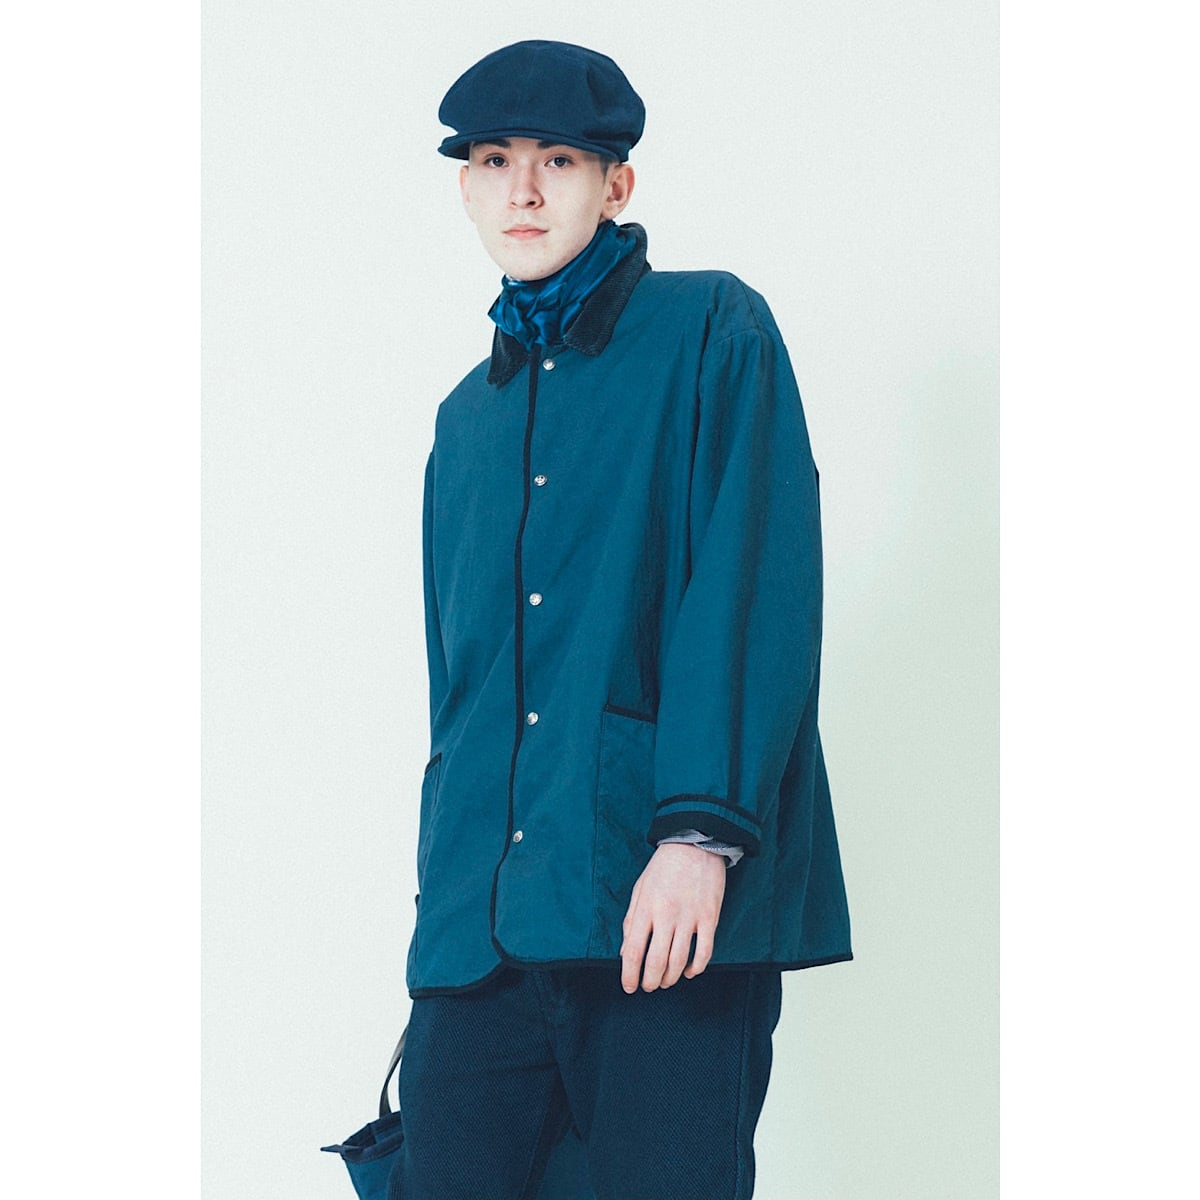 PARAFFIN CORDUROY JACKET W/SILVER BUTTONS